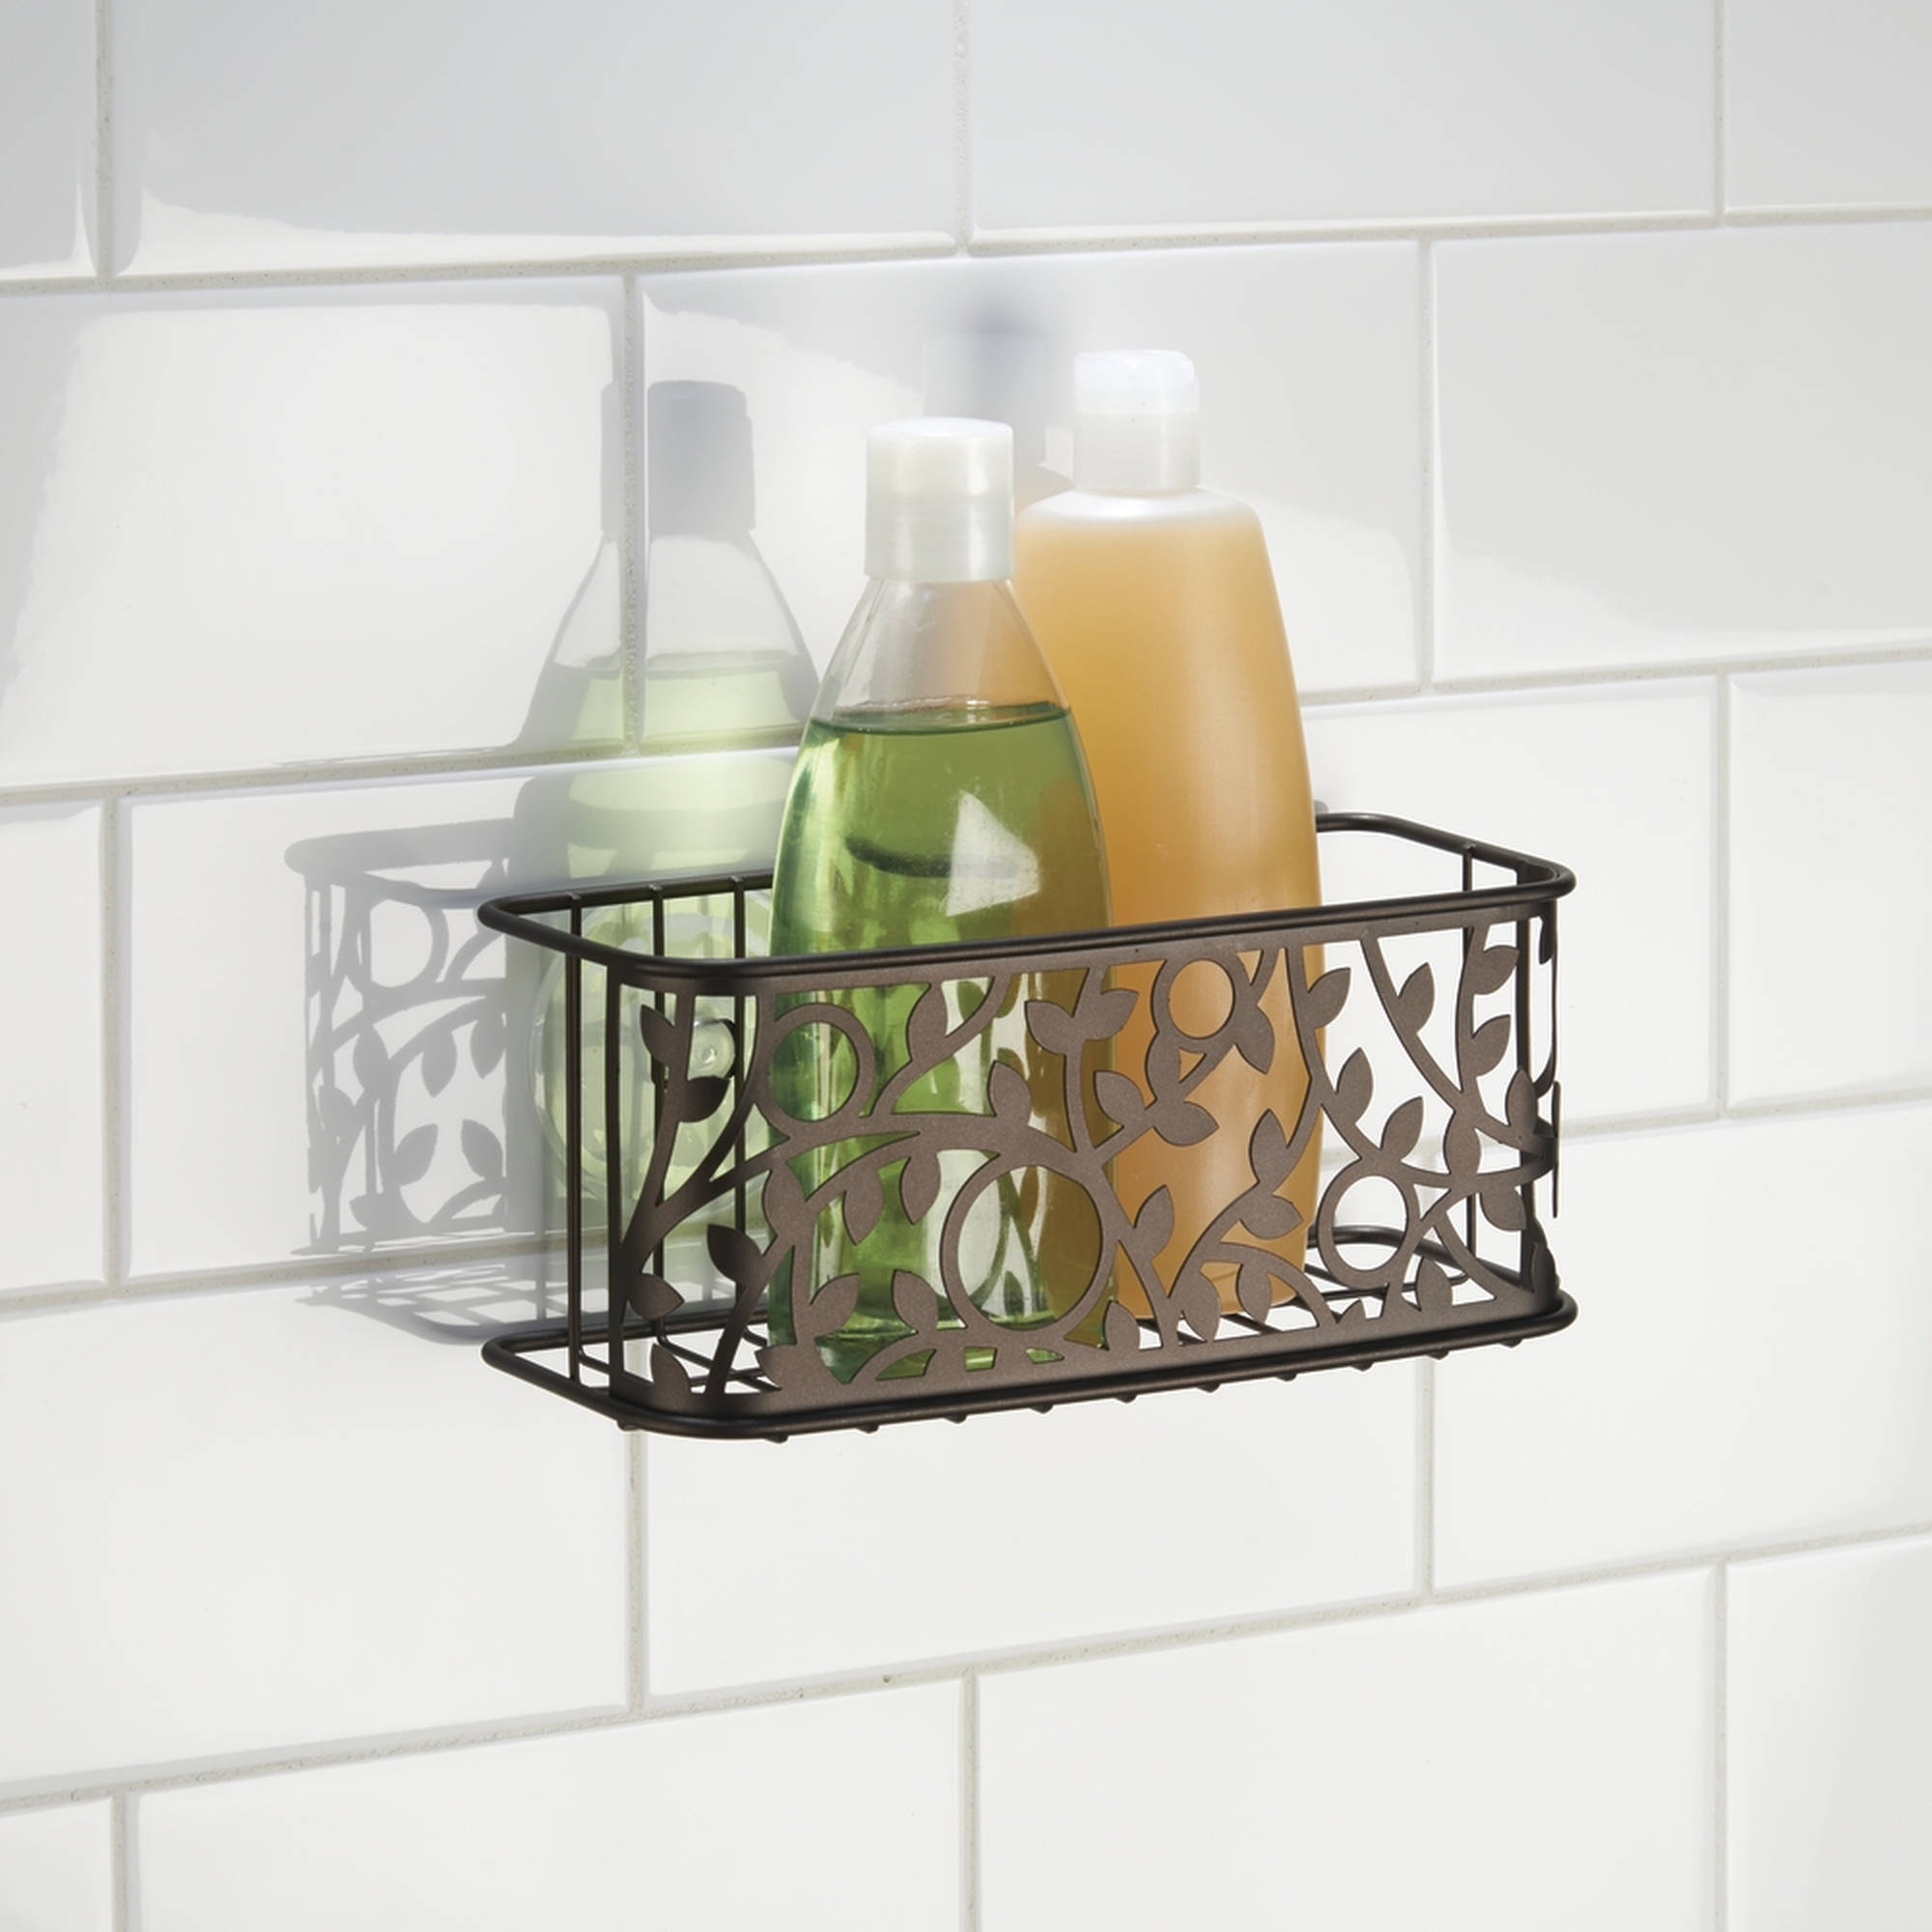 InterDesign Vine Suction Bathroom Shower Caddy Basket, Bronze